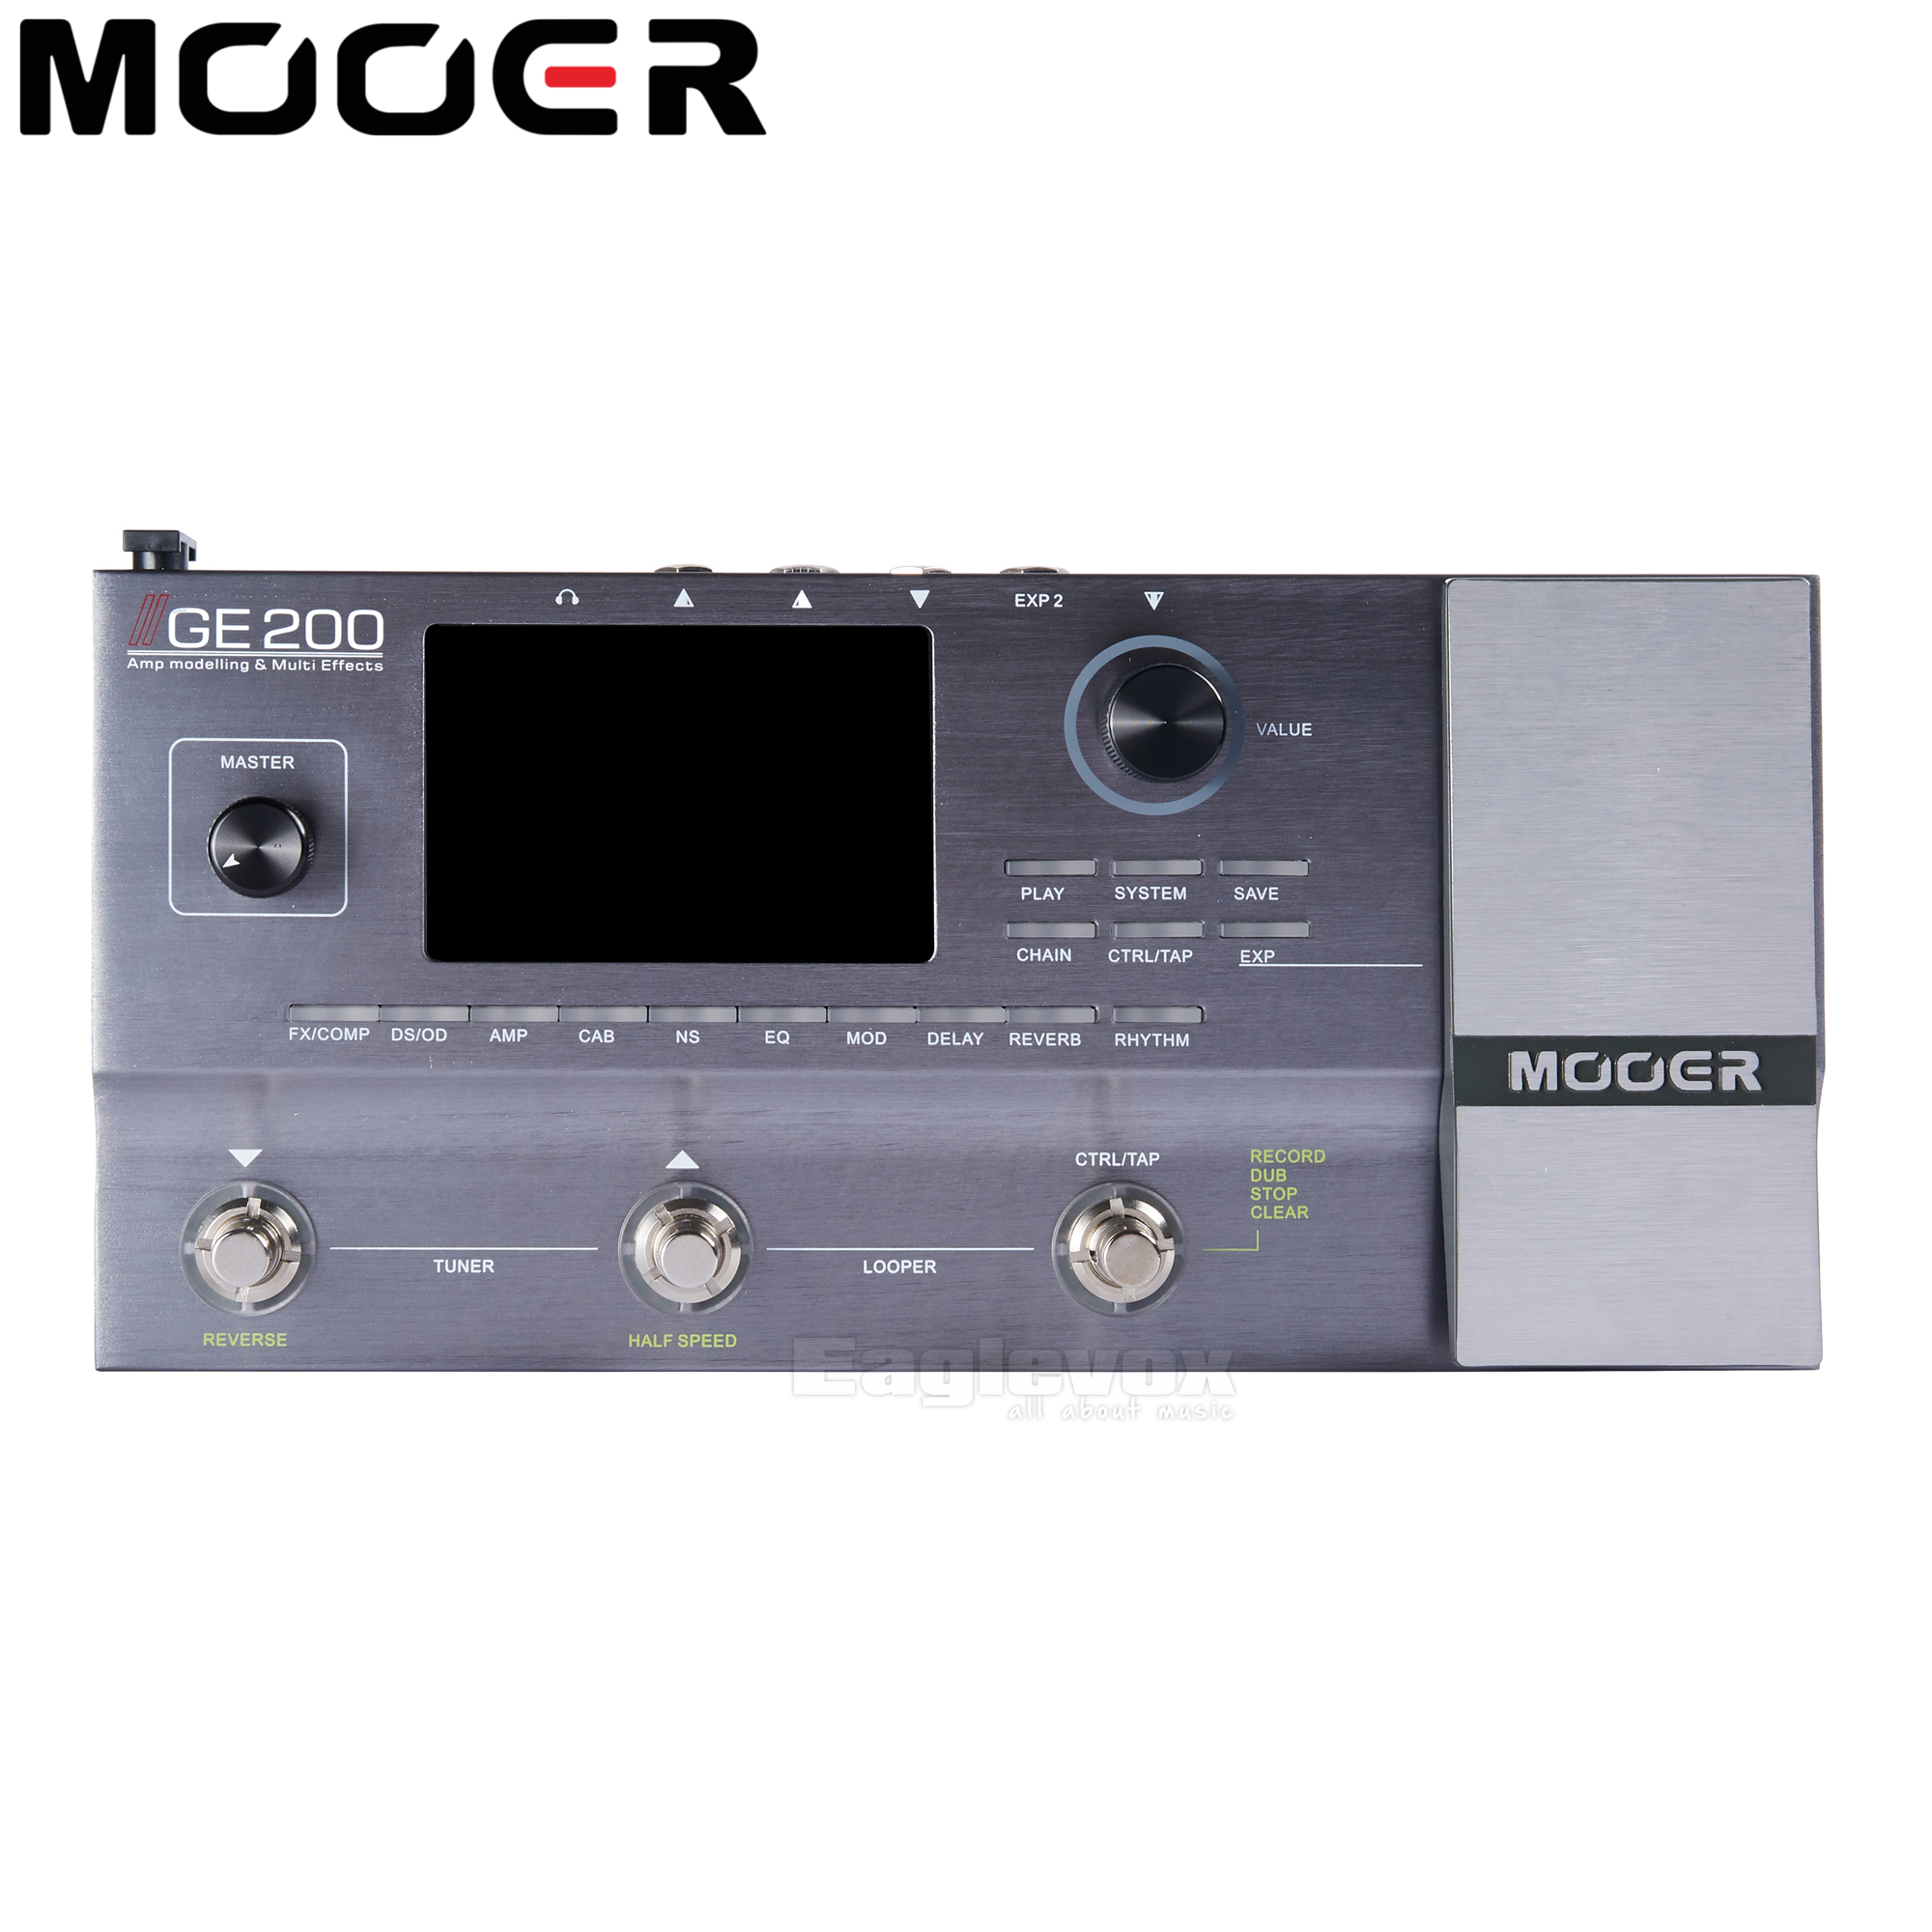 Mooer GE200 Multi Effects Processor Electric Guitar Effect Pedal Multi Effects  52 Second Looper 55 AMP Models Mooer GE200 birba толстовка для мальчика 999 86801 00 11a белый birba